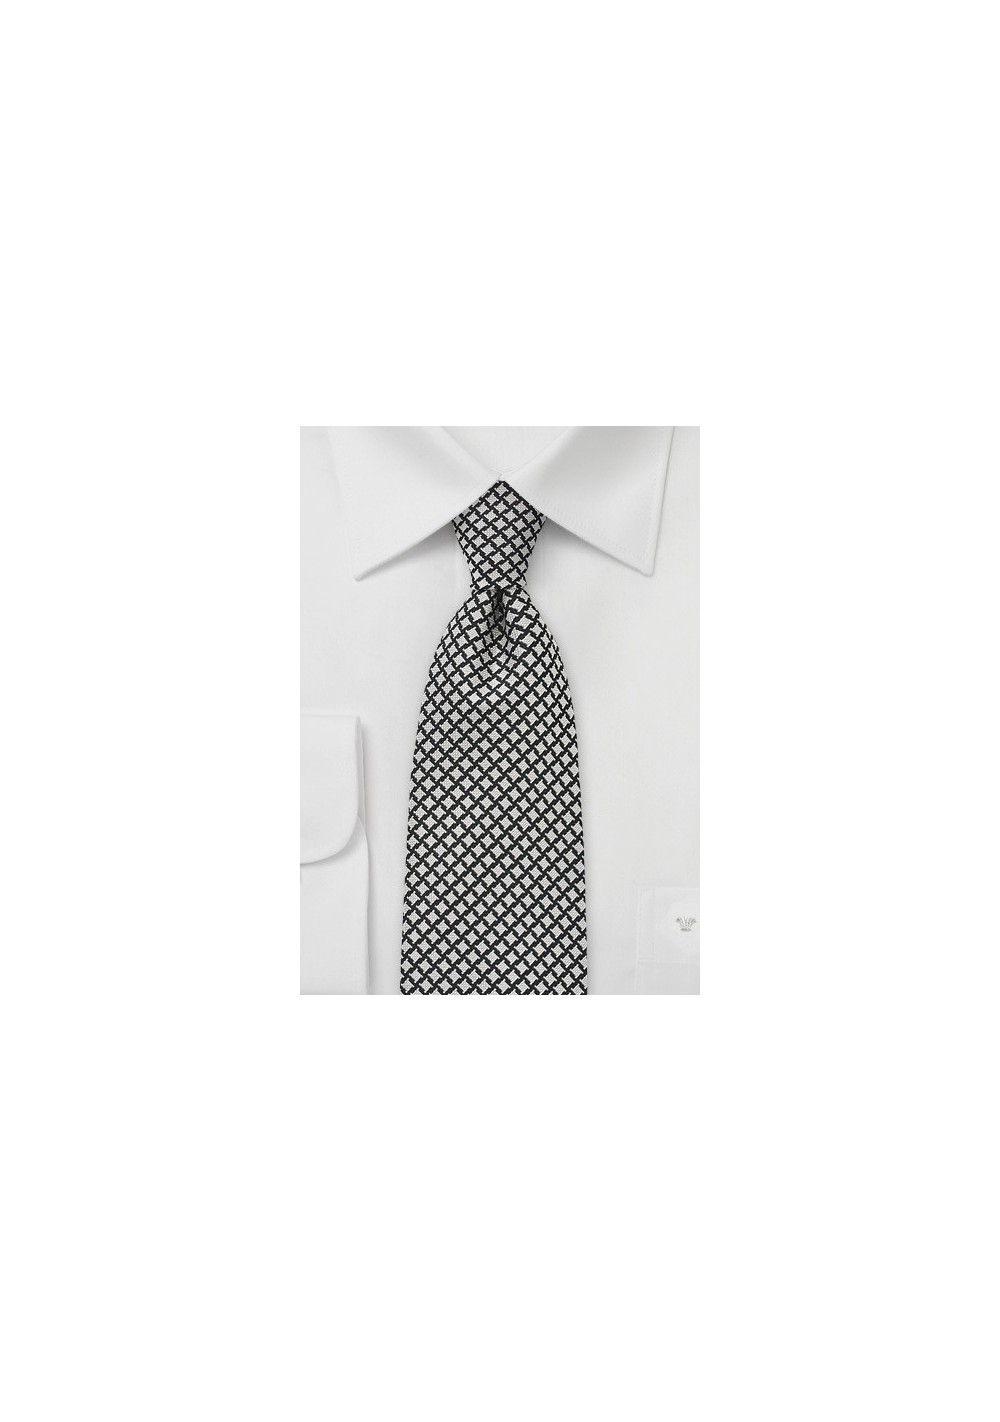 Handwoven Tie in Black and Ivory